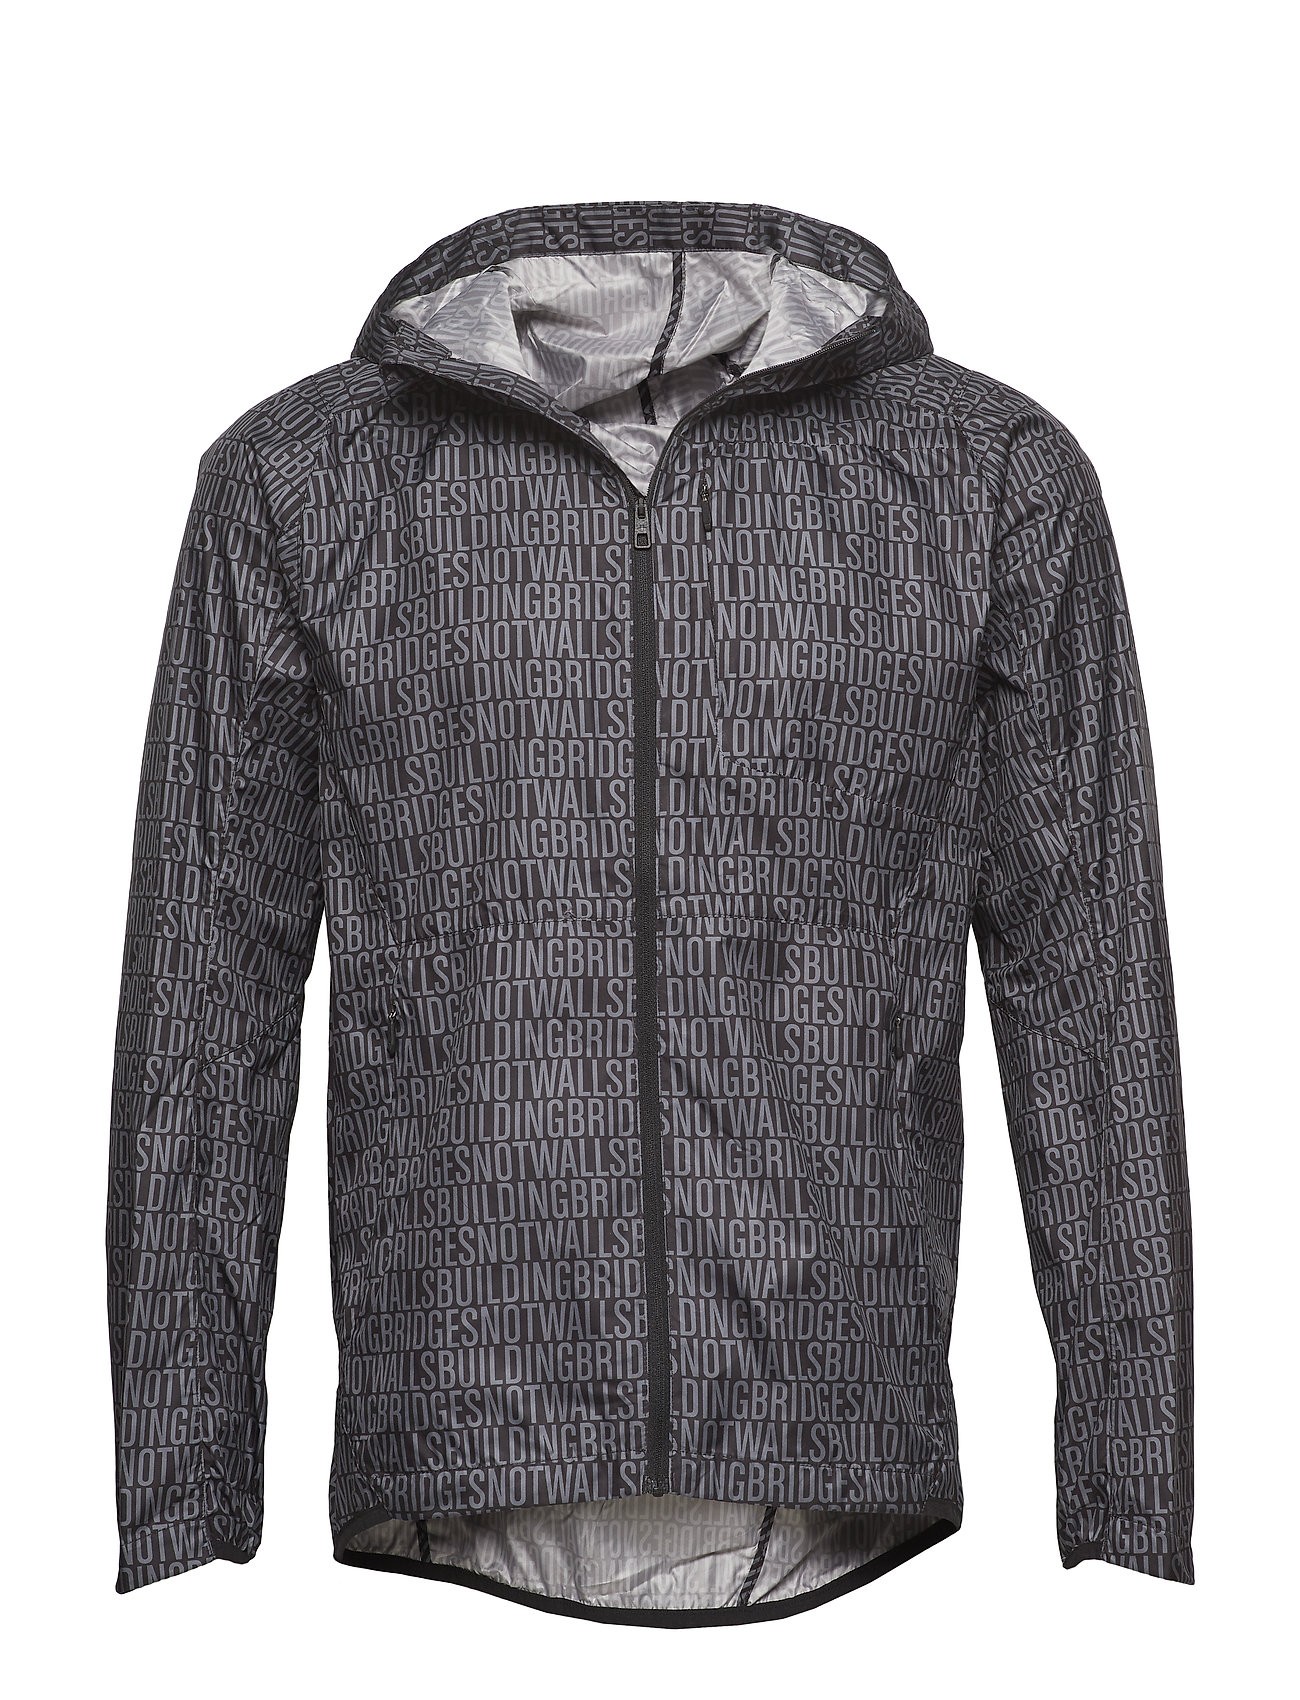 J. Lindeberg M Hooded Wind Jkt Str WindPro - BLACK BUILDNING BRIDGES EMB. P